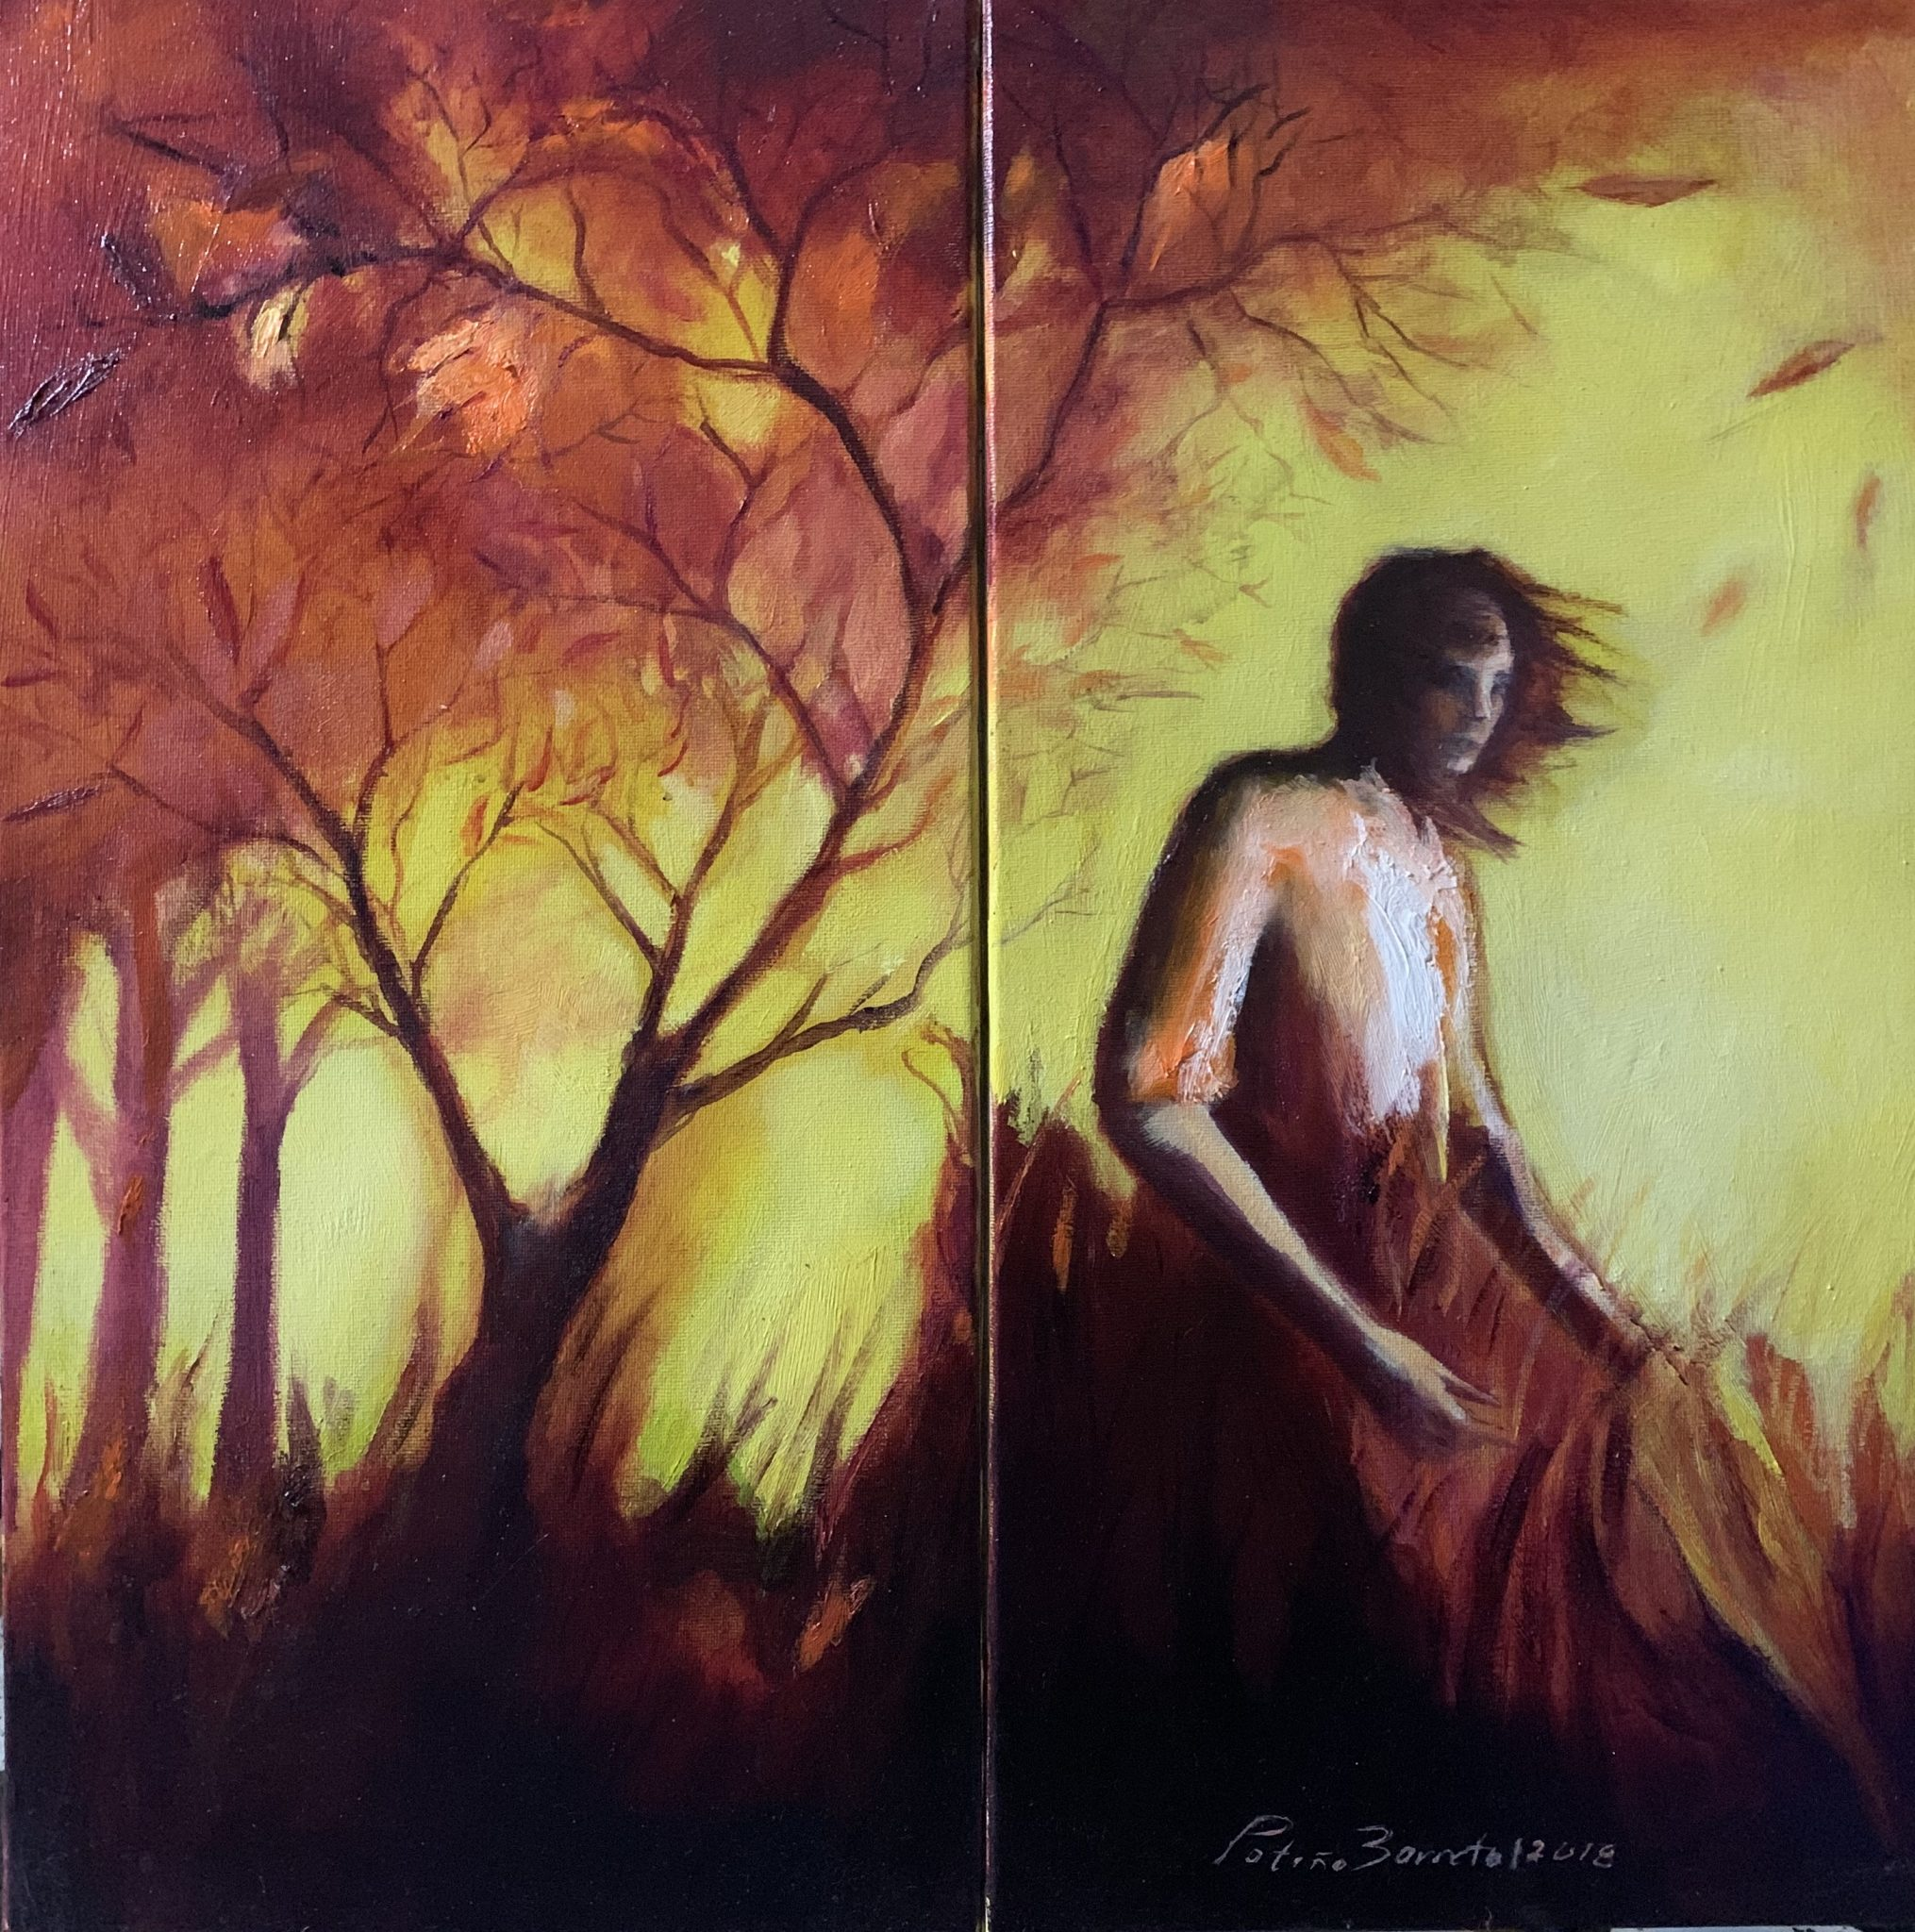 The Woman-Sunset